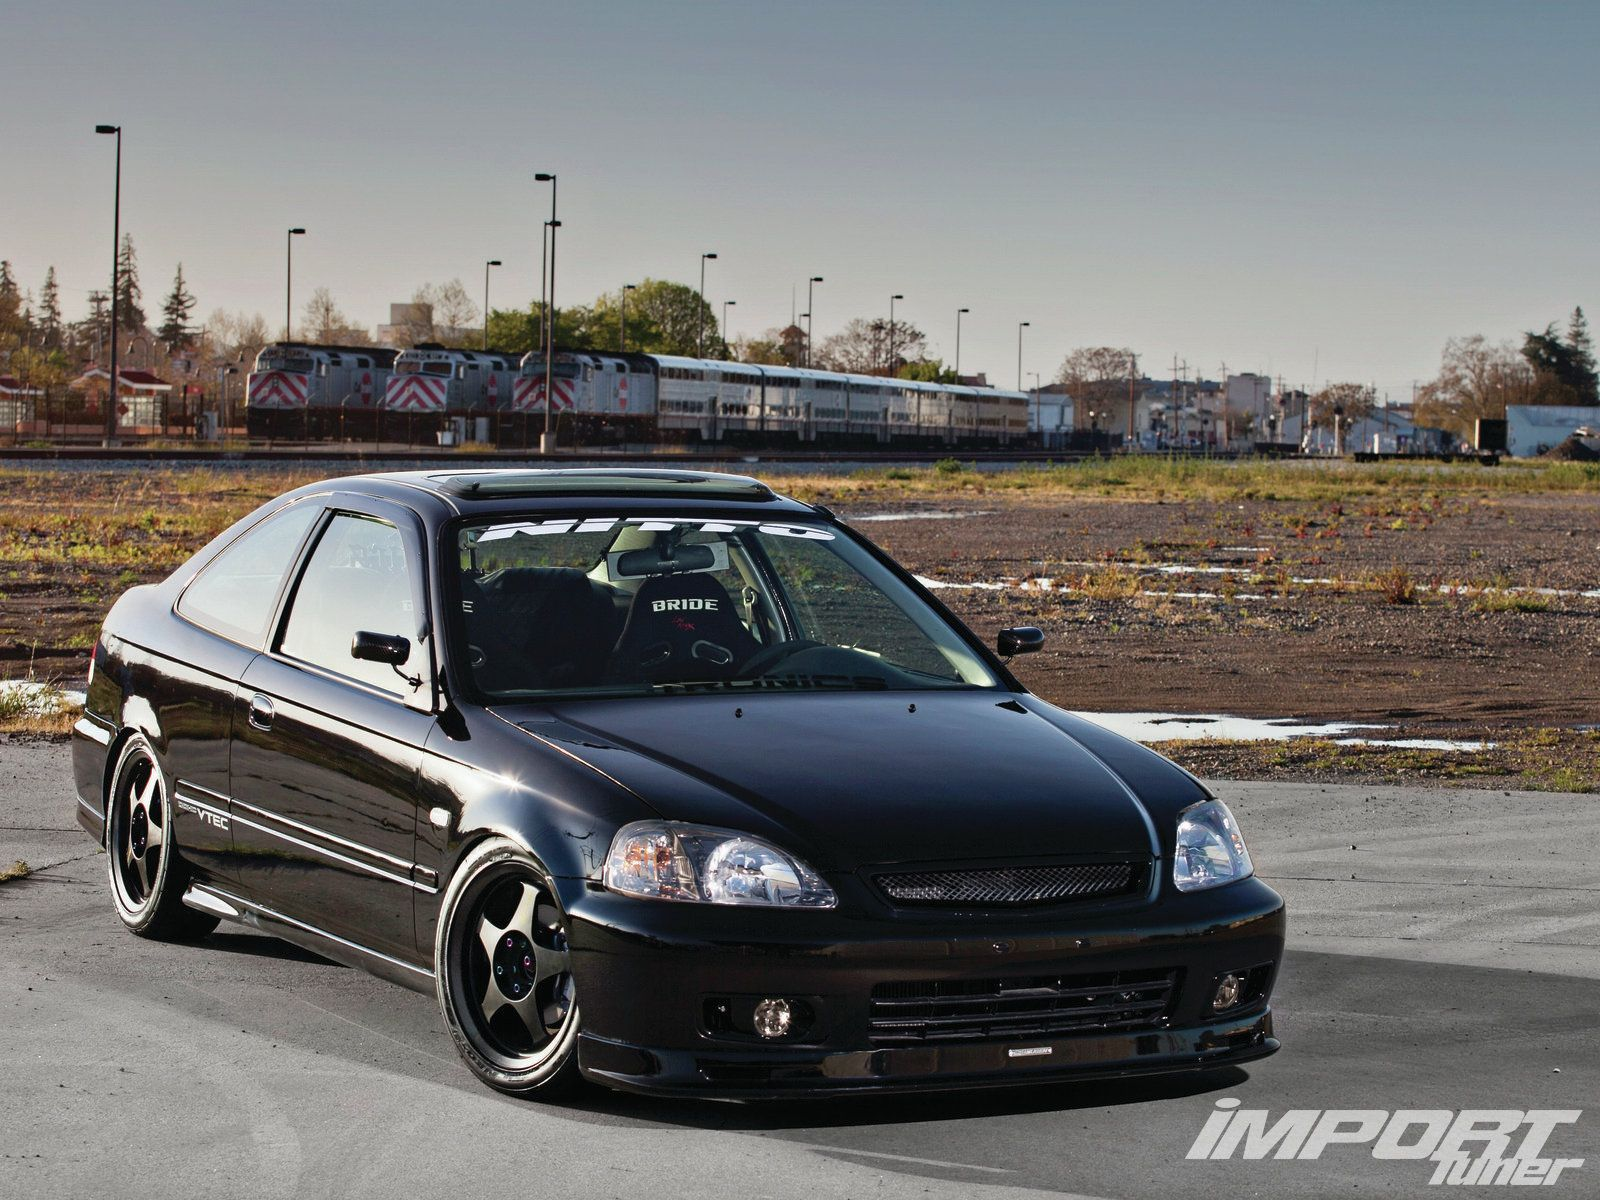 Civic Classic Sedan Black Olx: Impp 1208 01 O+2000 Honda Civic Si+mugen Type SS Front Lip